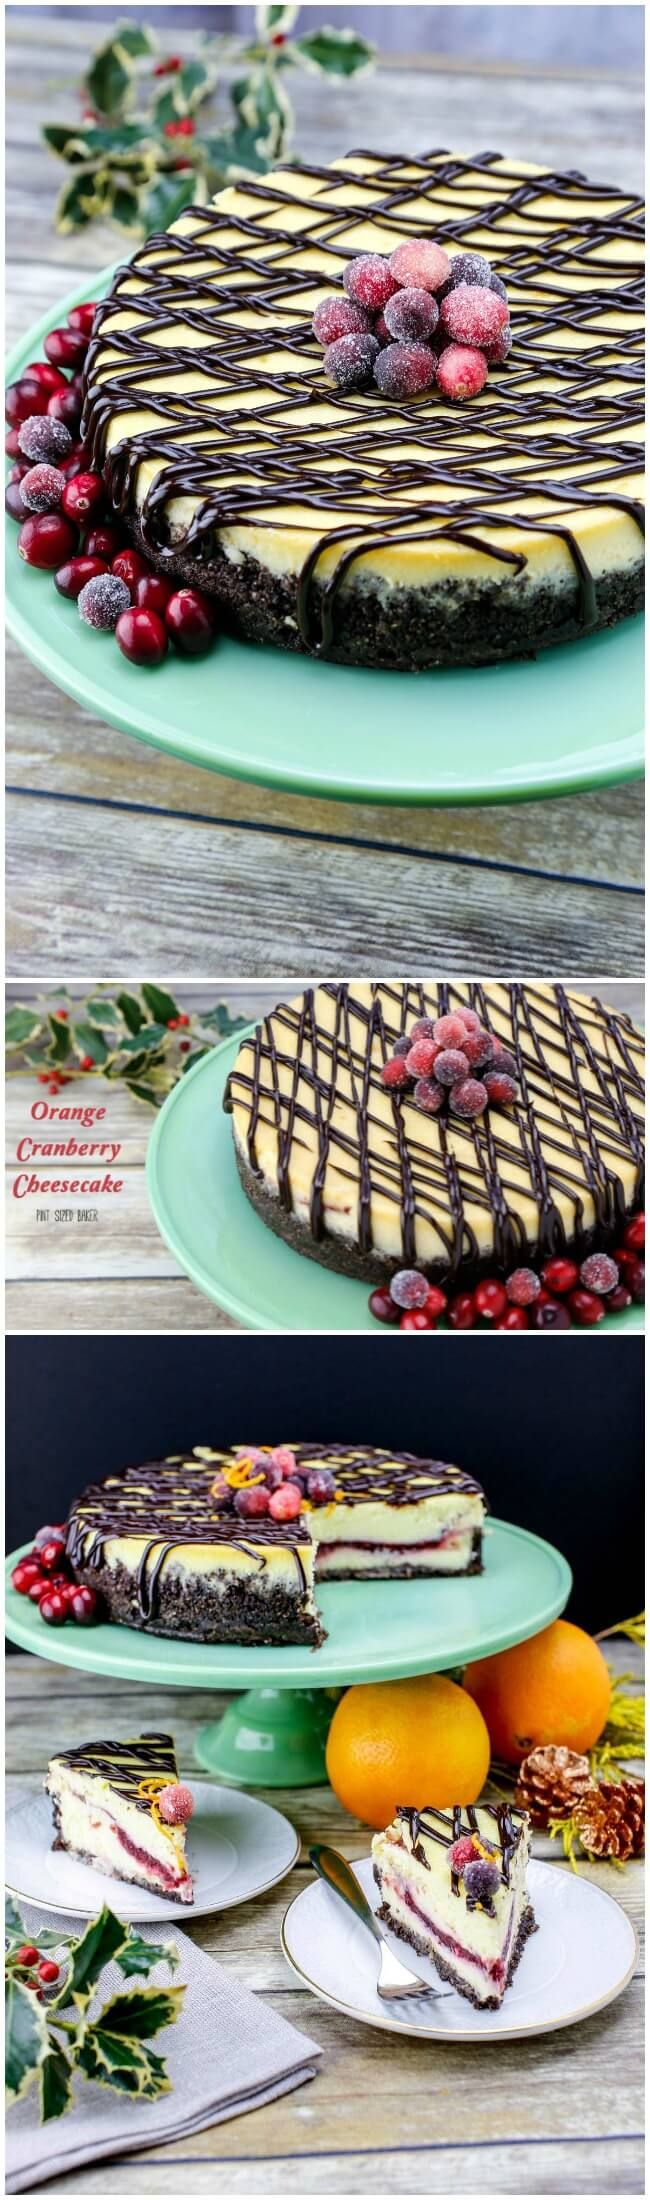 This holiday season enjoy this Cranberry Orange Cheesecake Recipe with your family and friends with great conversation and a cup of coffee.Made in partnership with @Wilton